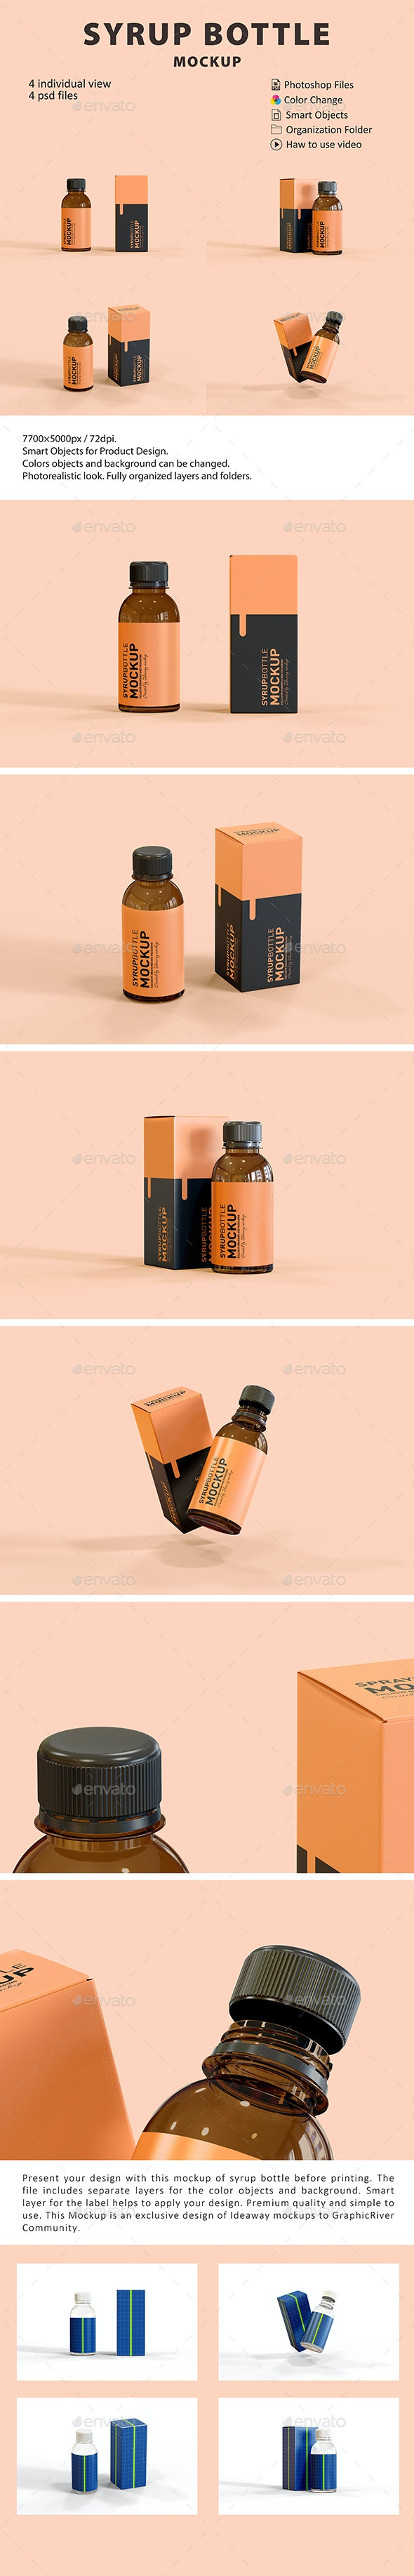 Syrup Bottle Box Mockup - Packaging Product Mock-Ups